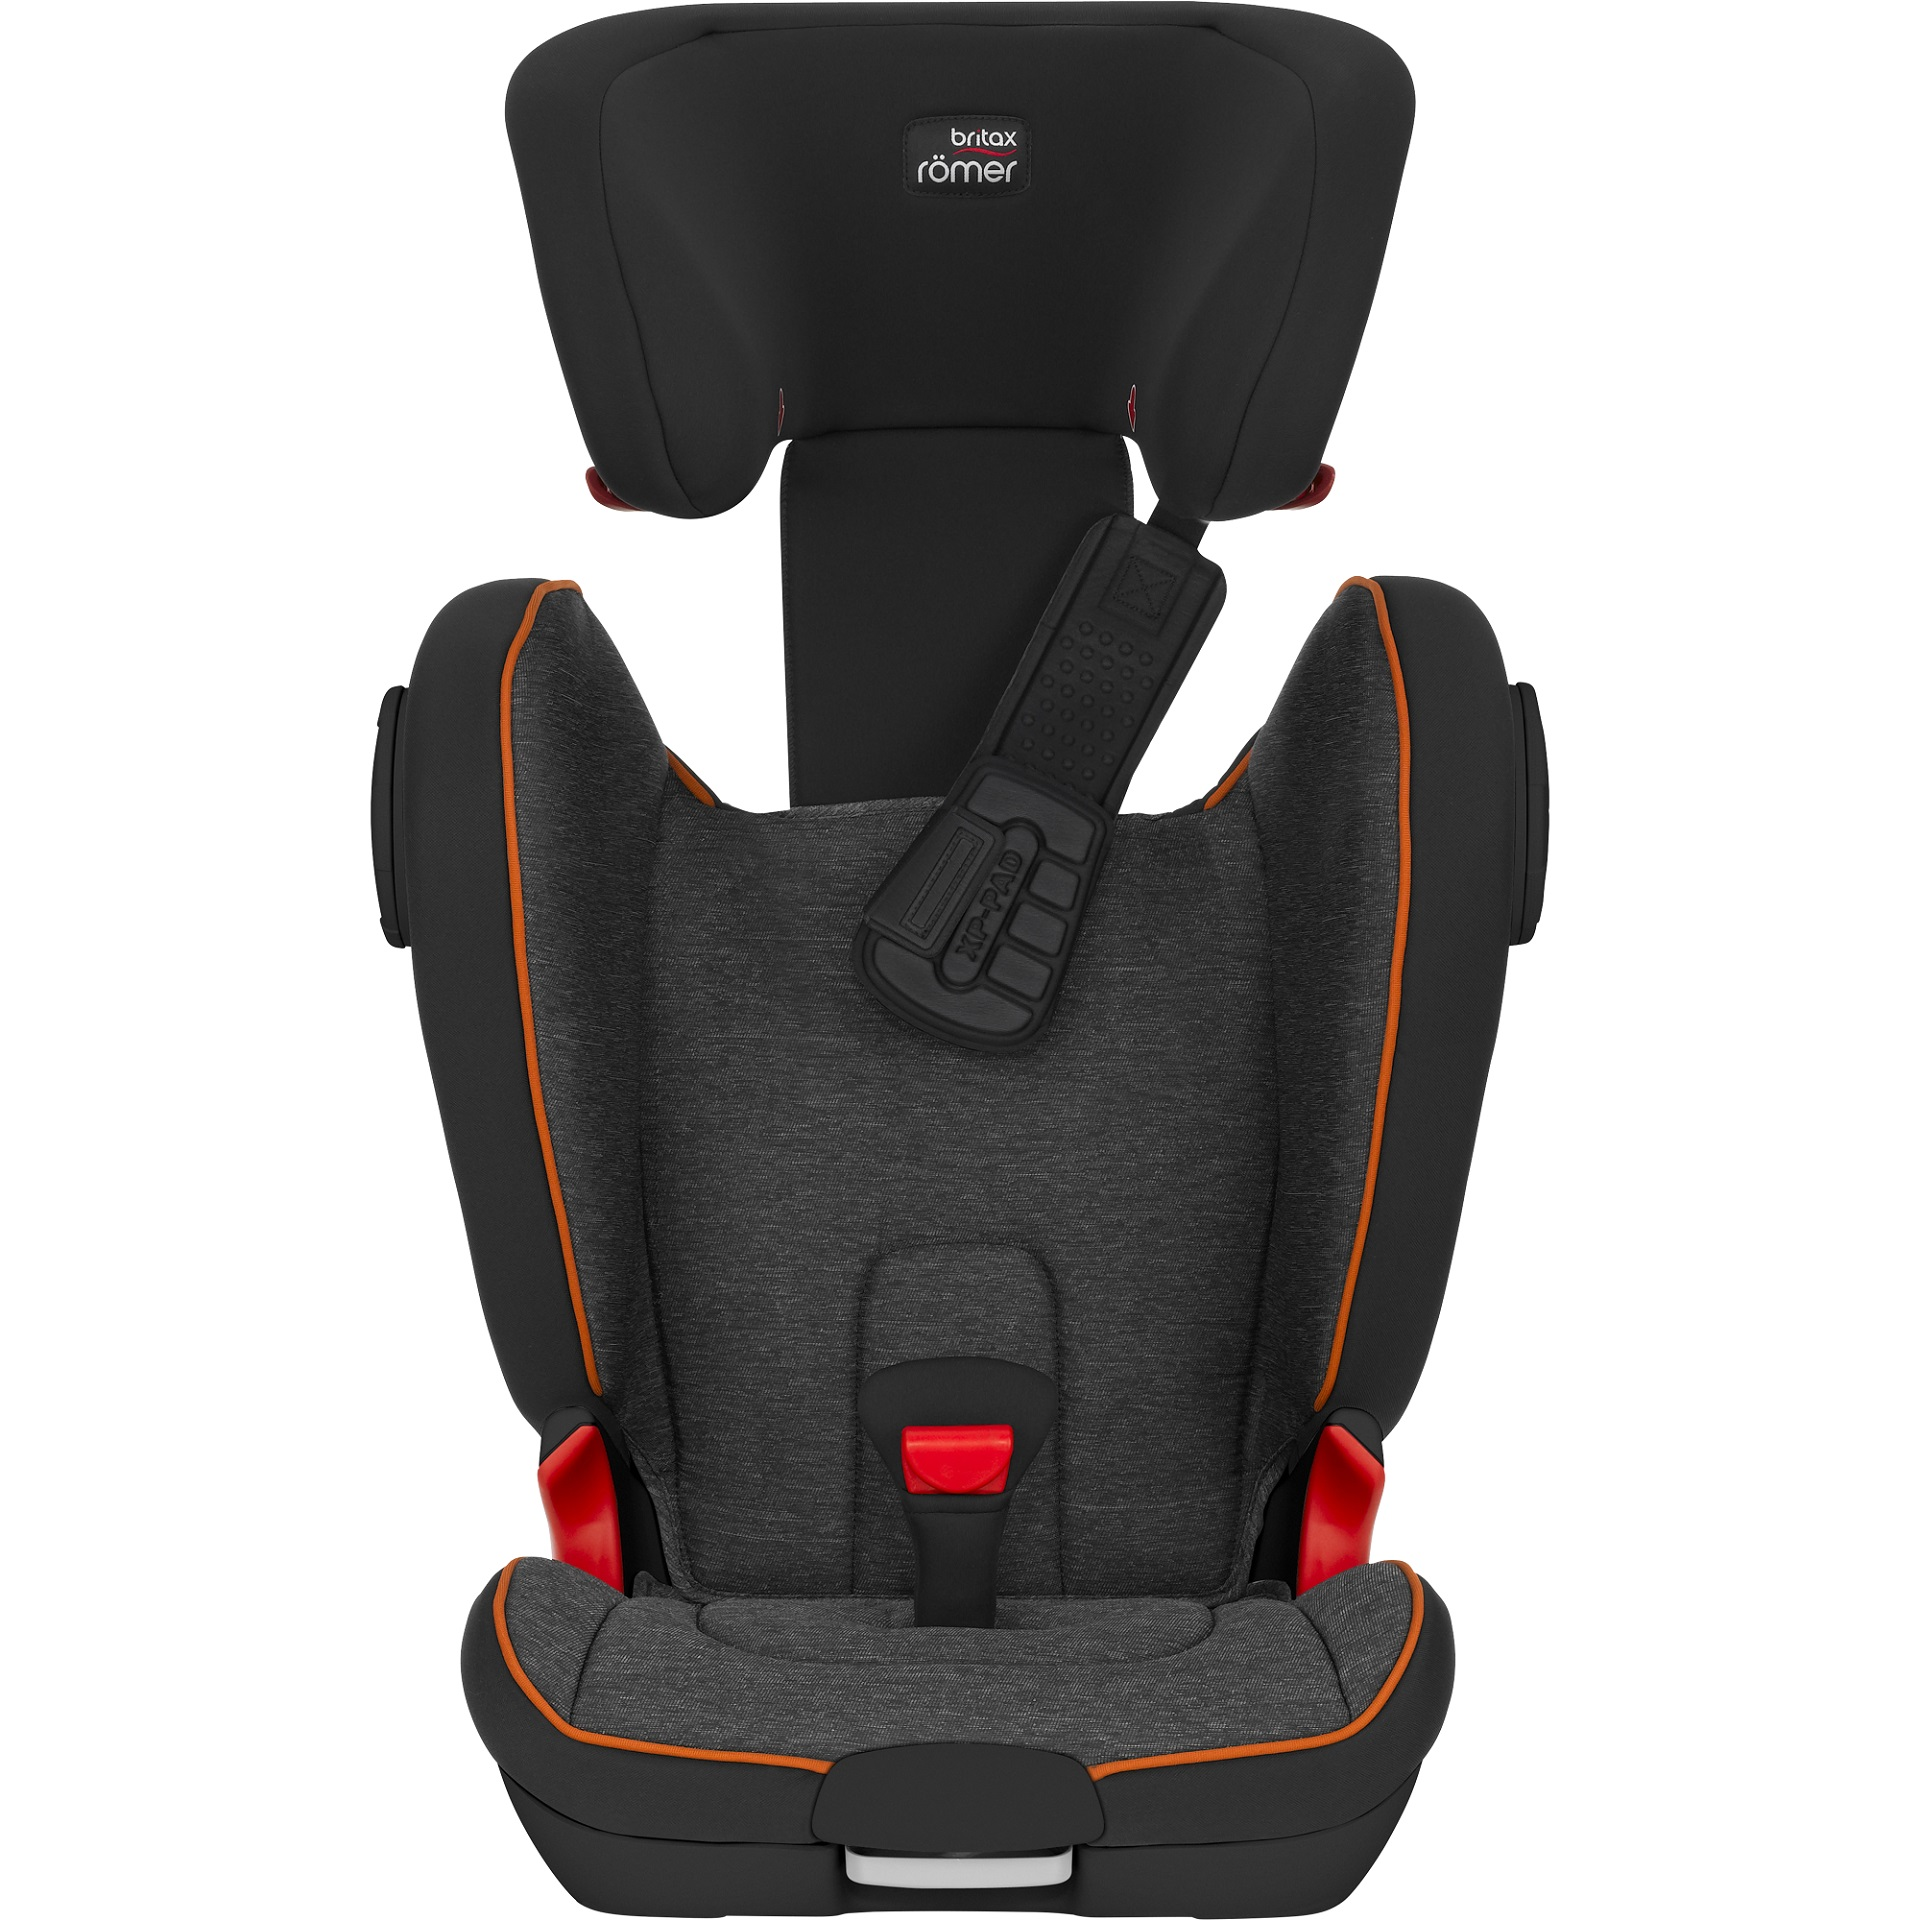 britax r mer child car seat kidfix ii xp sict black series 2018 flame red buy at kidsroom. Black Bedroom Furniture Sets. Home Design Ideas